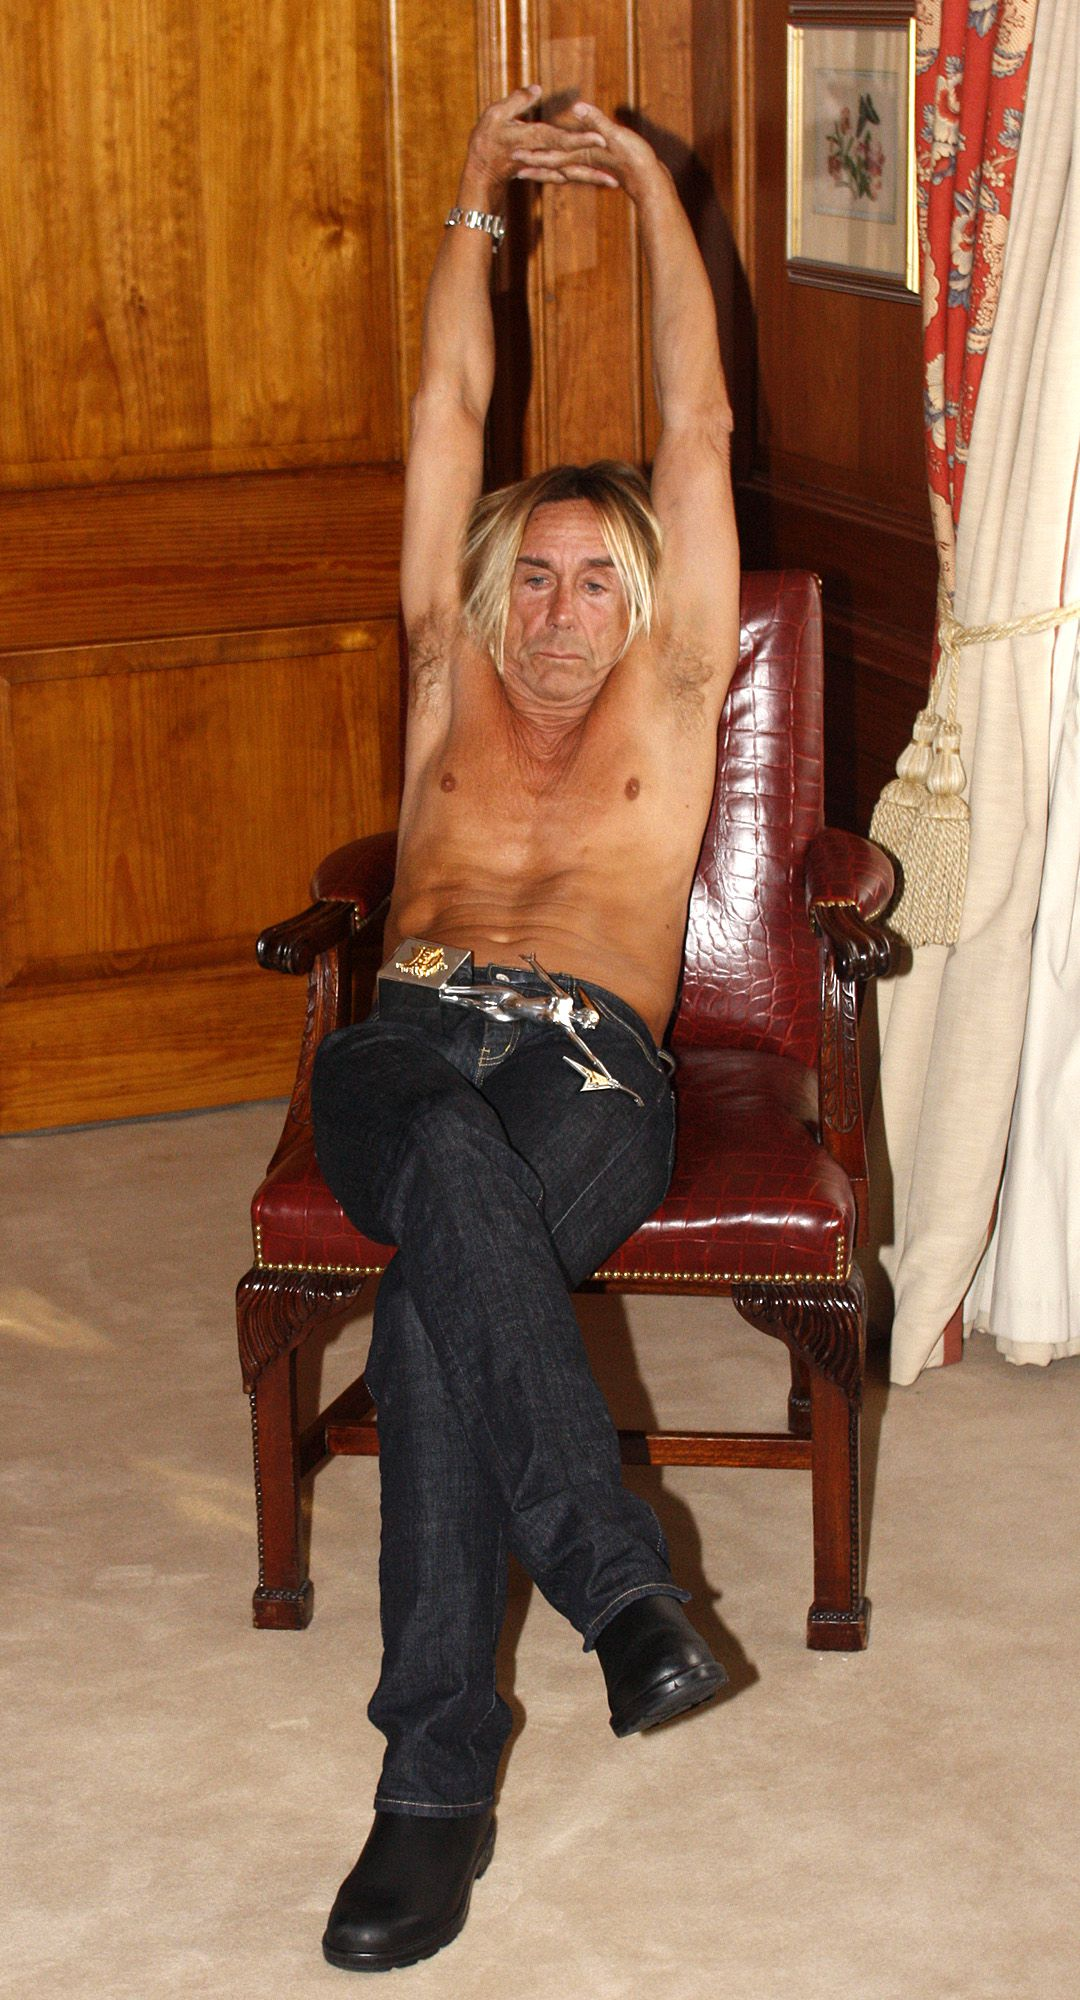 U.S. musician Iggy Pop poses for photographers during a photo call in London, Sunday, Nov. 1, 2009, to celebrate receiving the Living Legend Award ahead of the Classic Rock Roll of Honor on Nov. 2. (AP Photo/Akira Suemori)